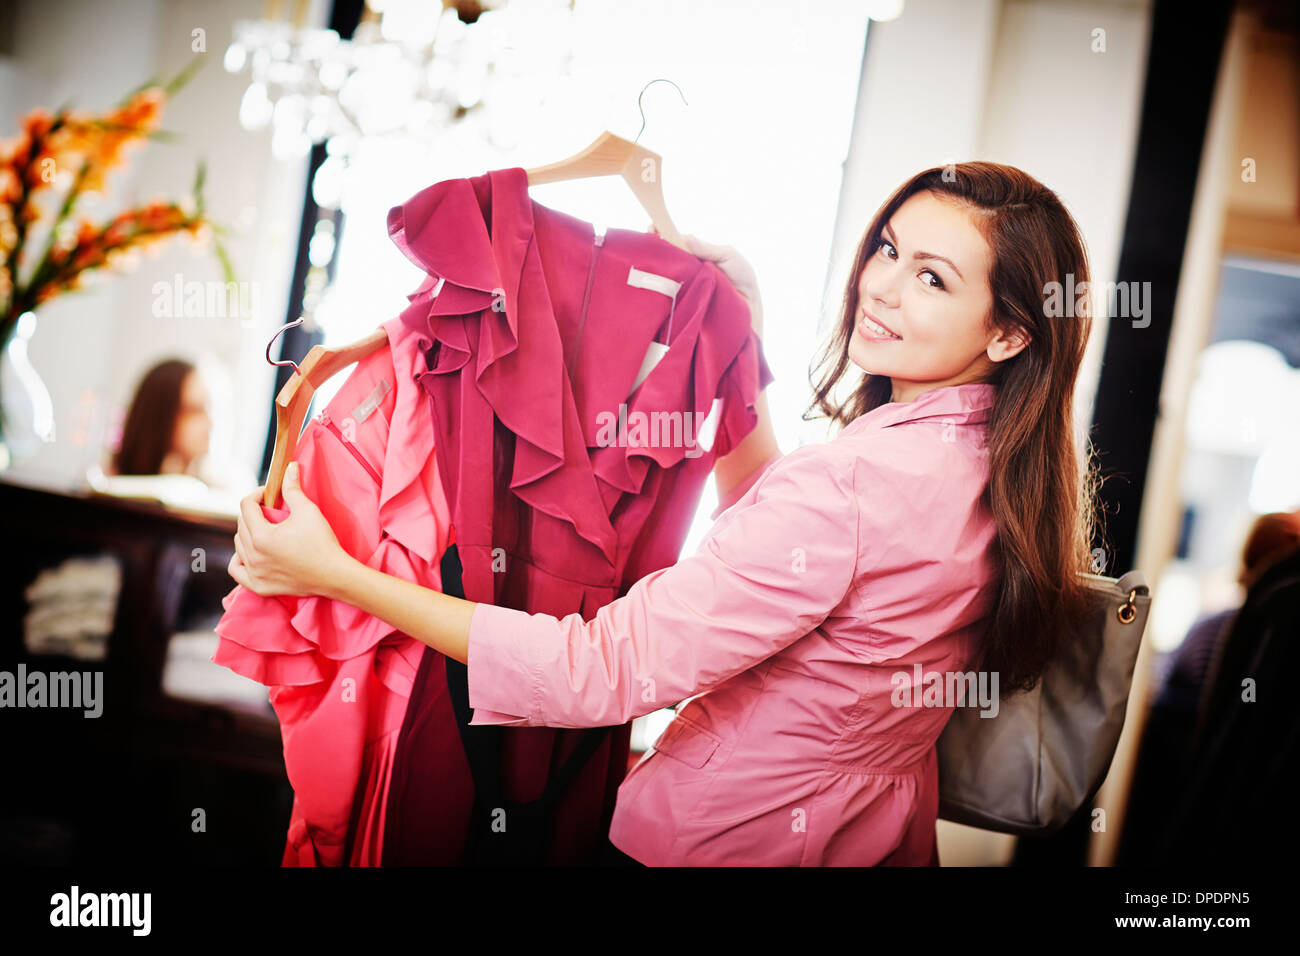 Young woman looking pink top on hanger - Stock Image